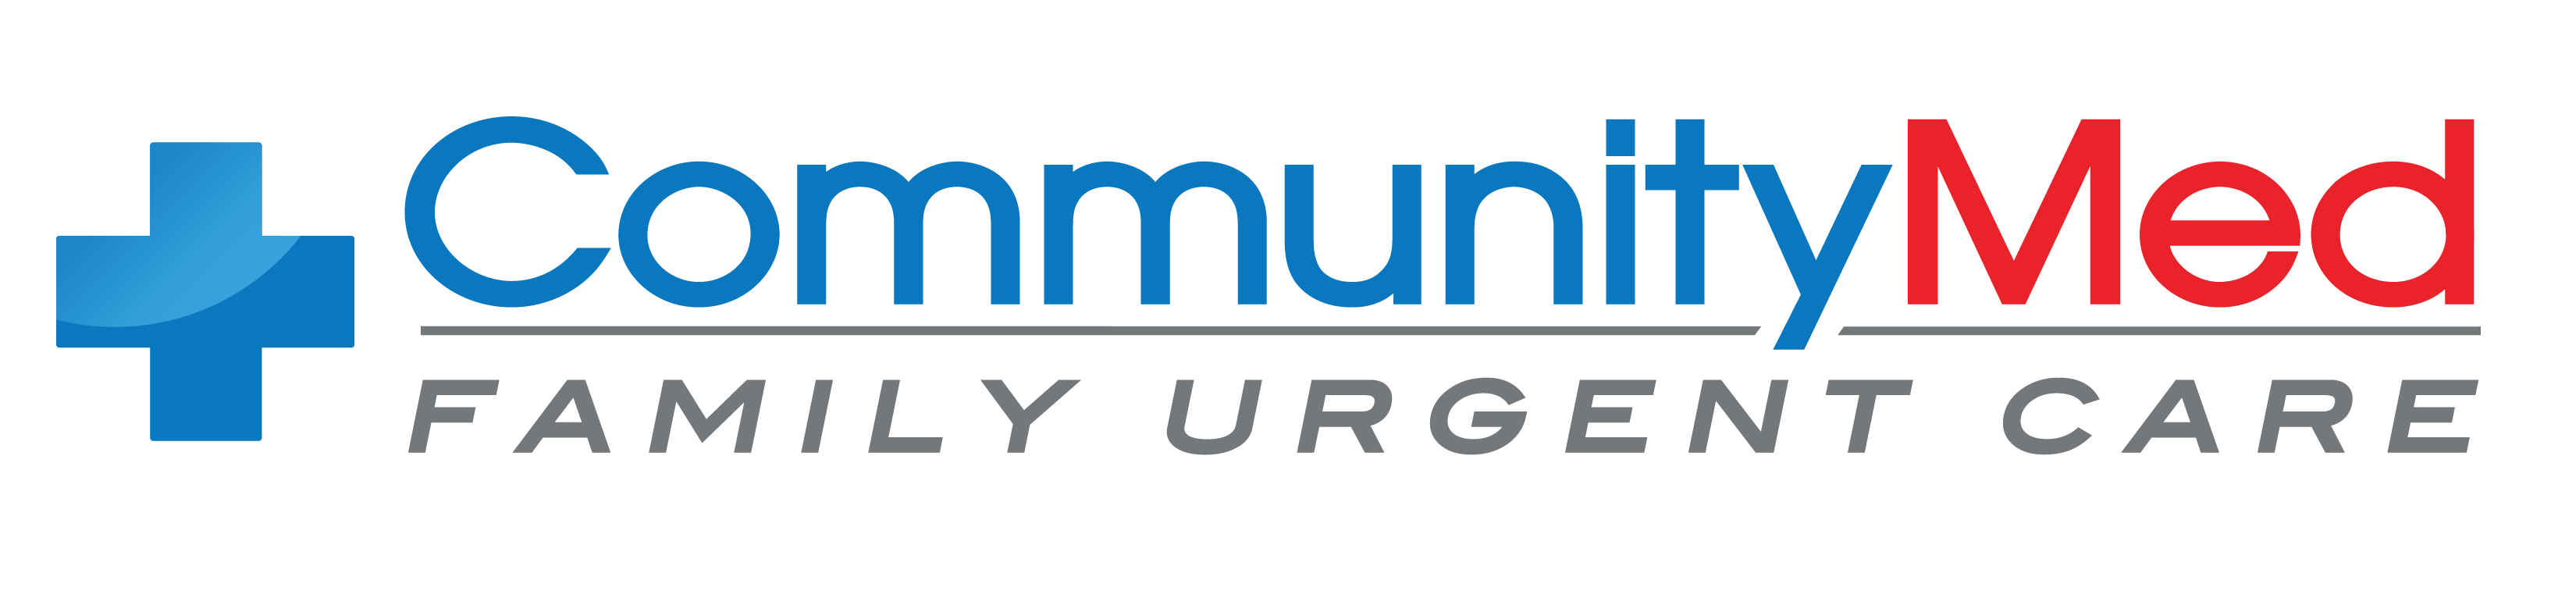 Community family urgent care logo   large 01